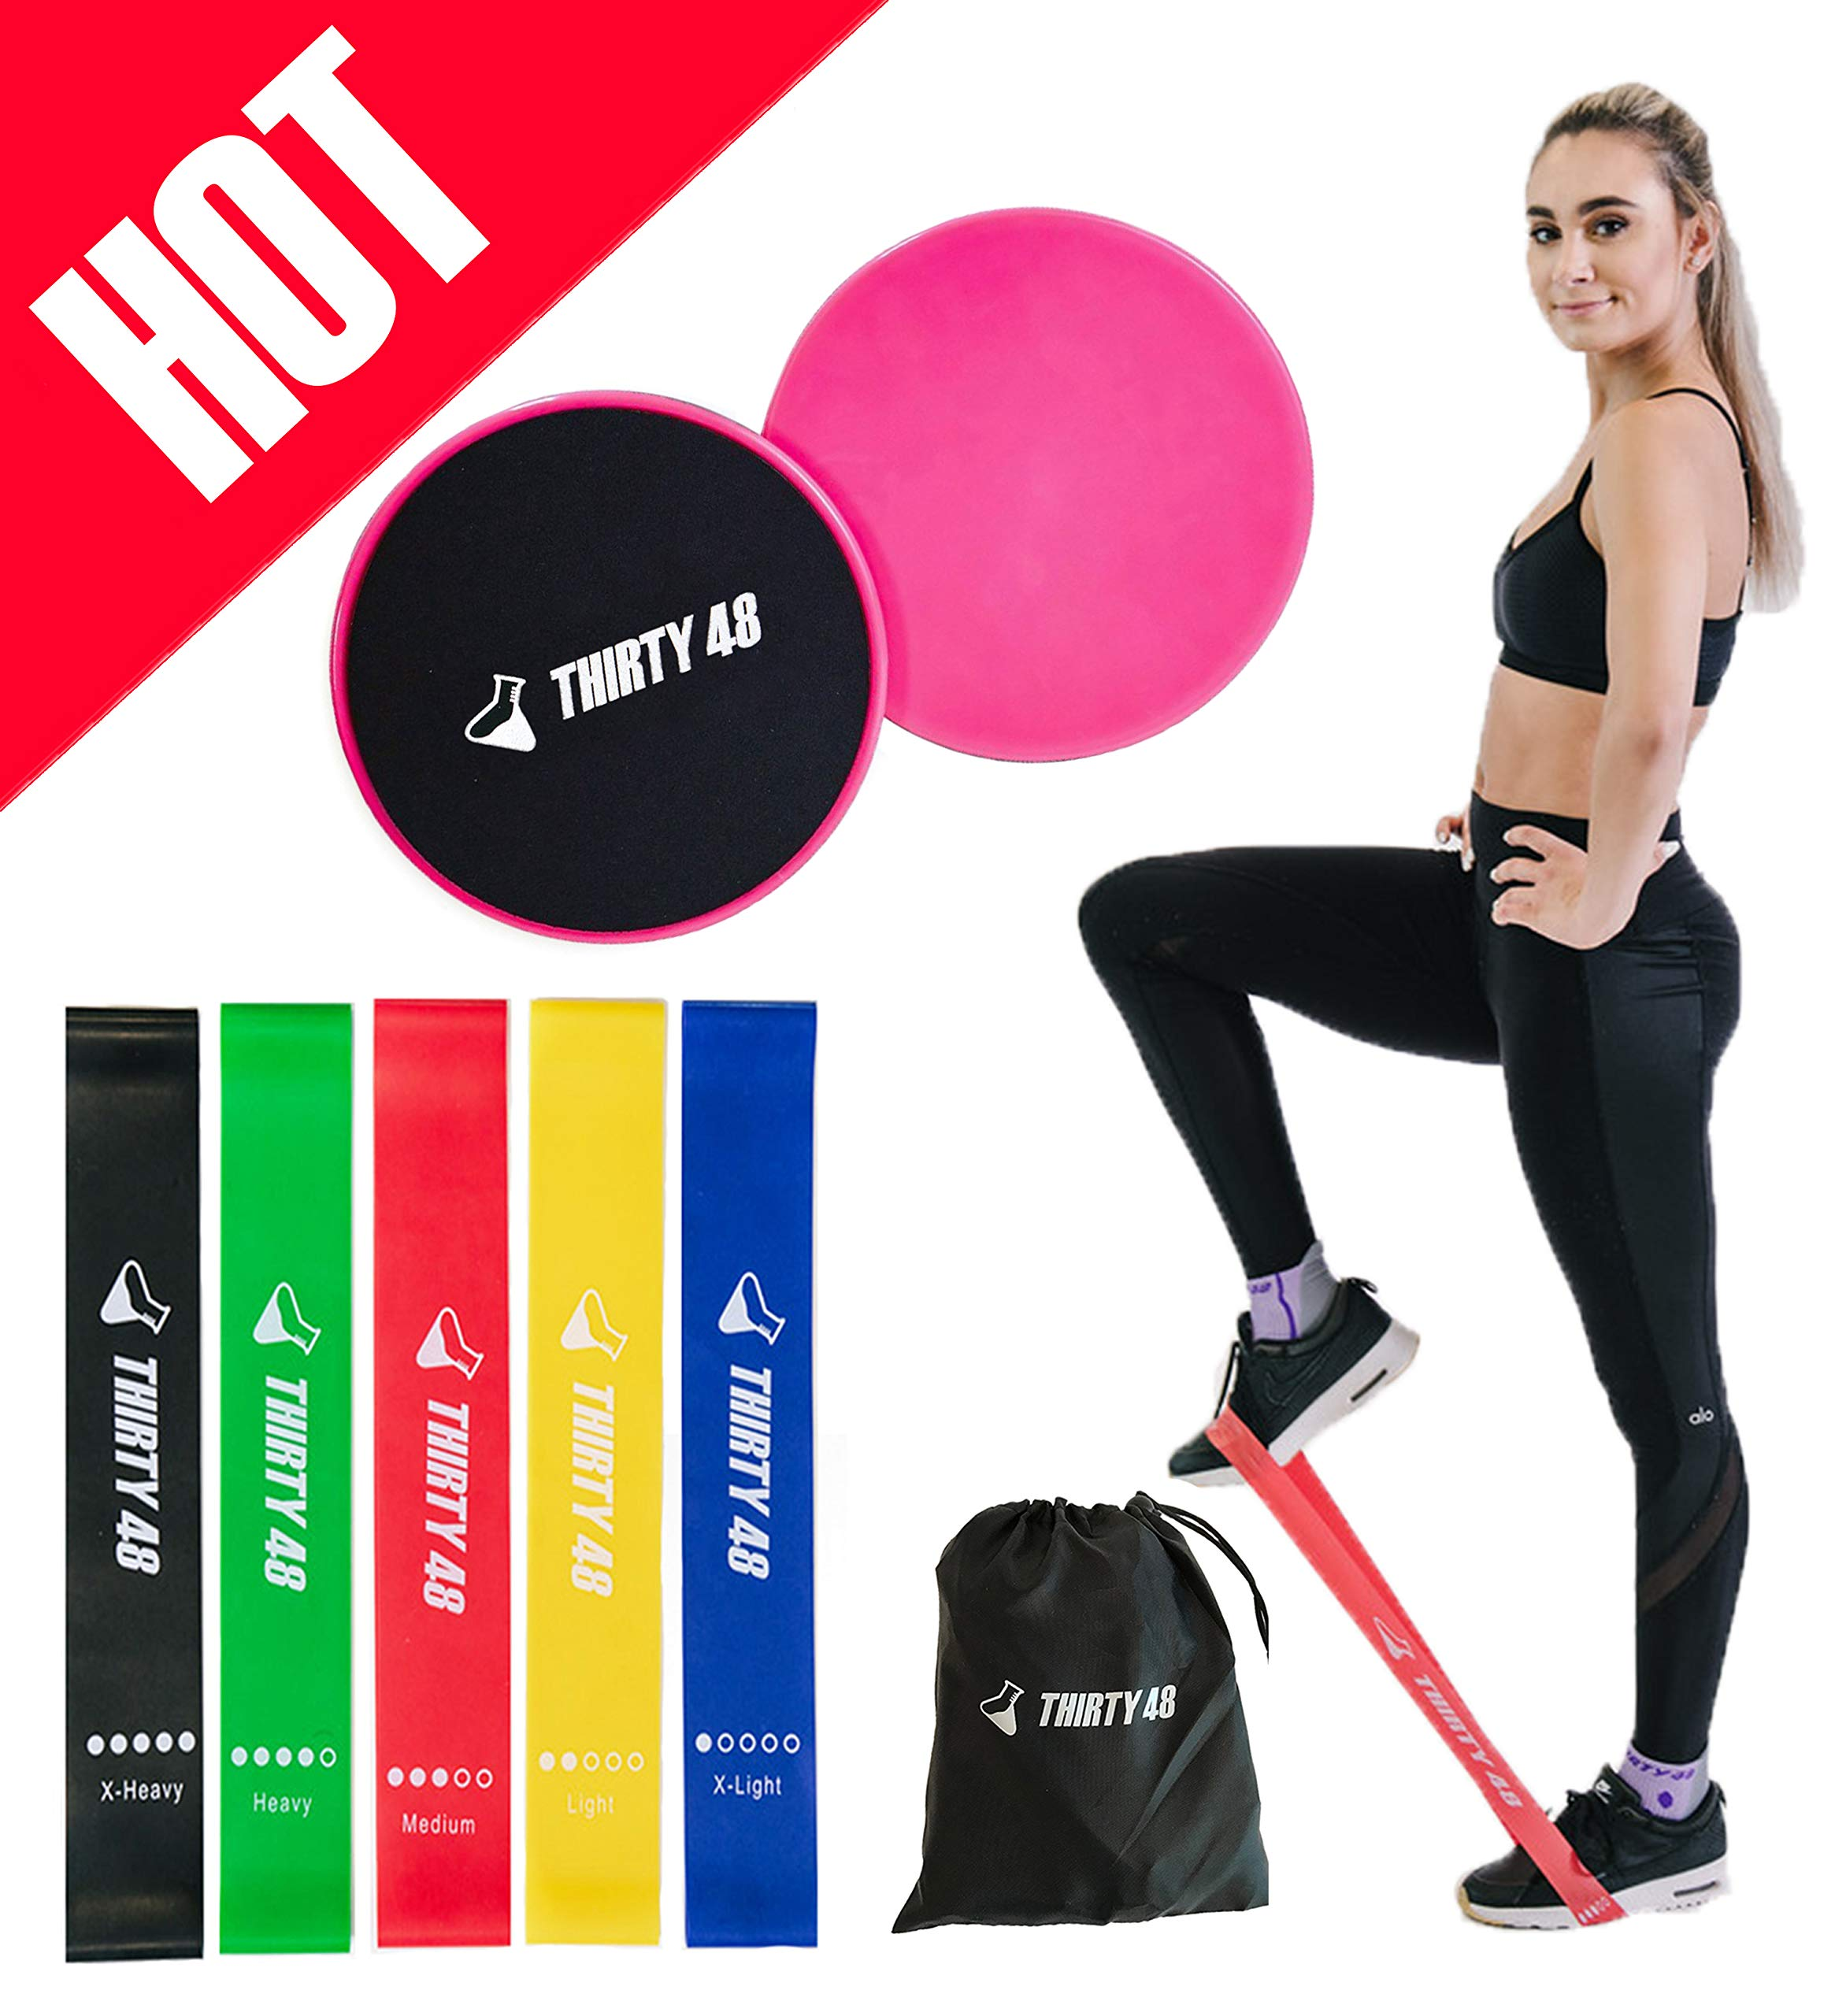 Thirty48 Gliding Discs Core Sliders and 5 Exercise Resistance Bands | Strength, Stability, and Crossfit Training for Home, Gym, Travel | User Guide & Carry Bag (Resistance Bands + Core Slider(Pink)) by Thirty48 (Image #1)